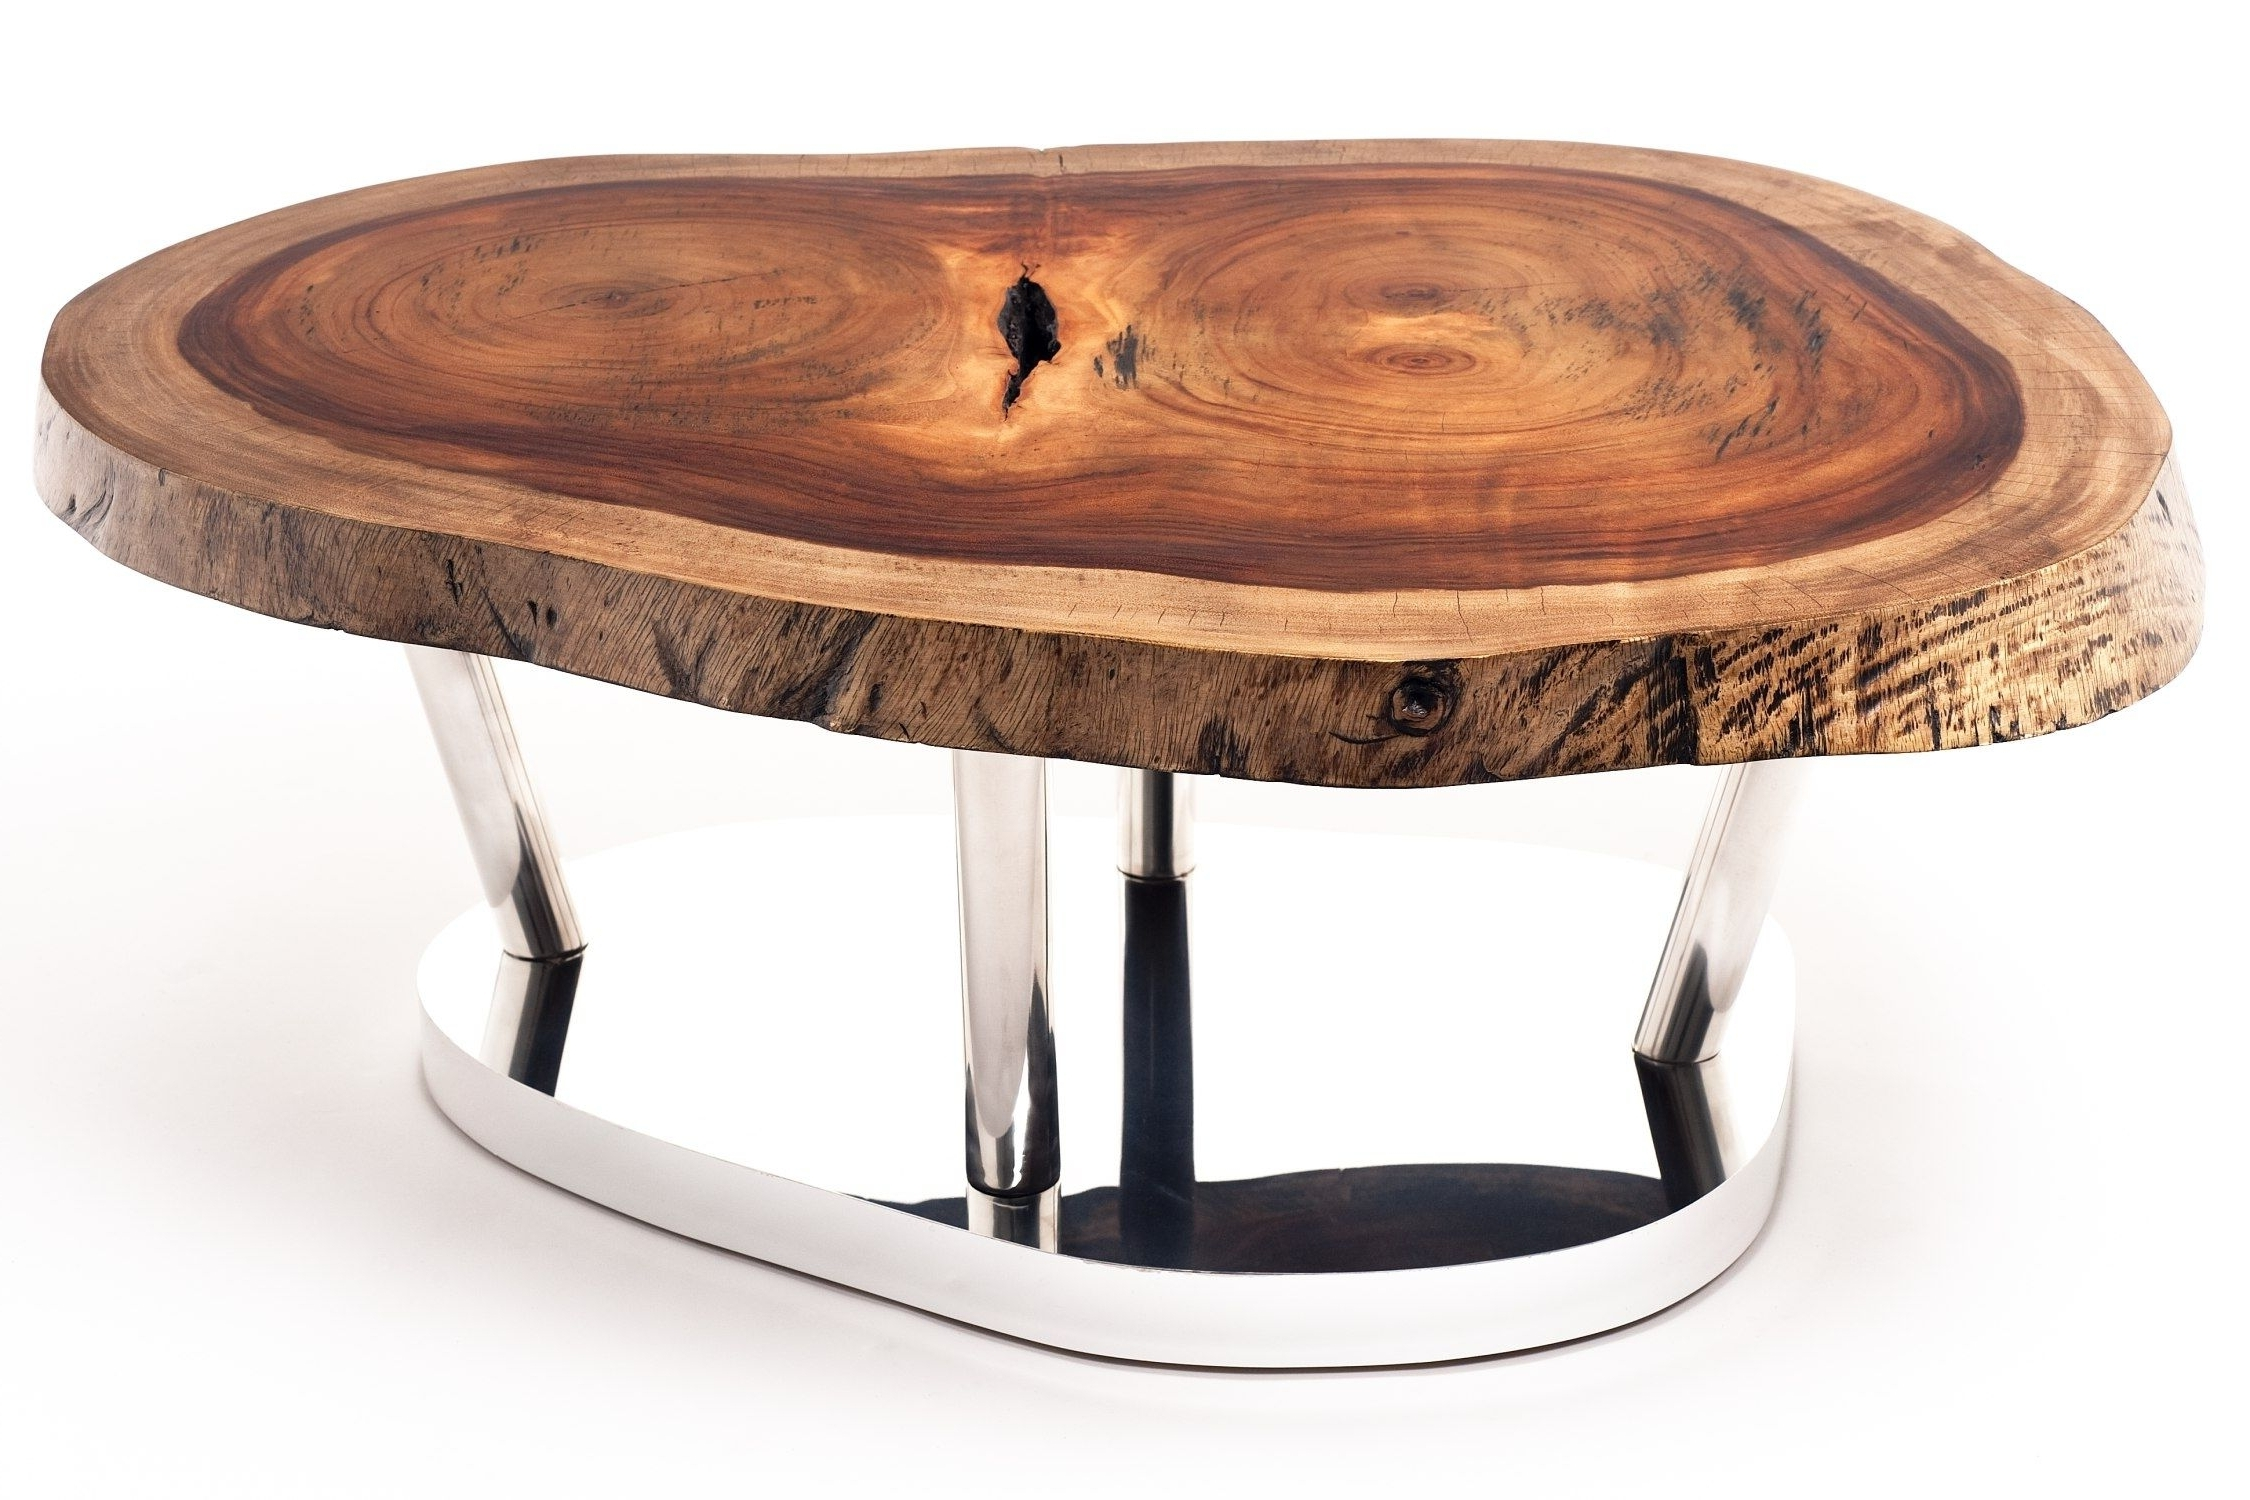 Widely Used Sliced Trunk Coffee Tables In Contemporary Coffee Table / Wooden / In Reclaimed Material (View 19 of 20)